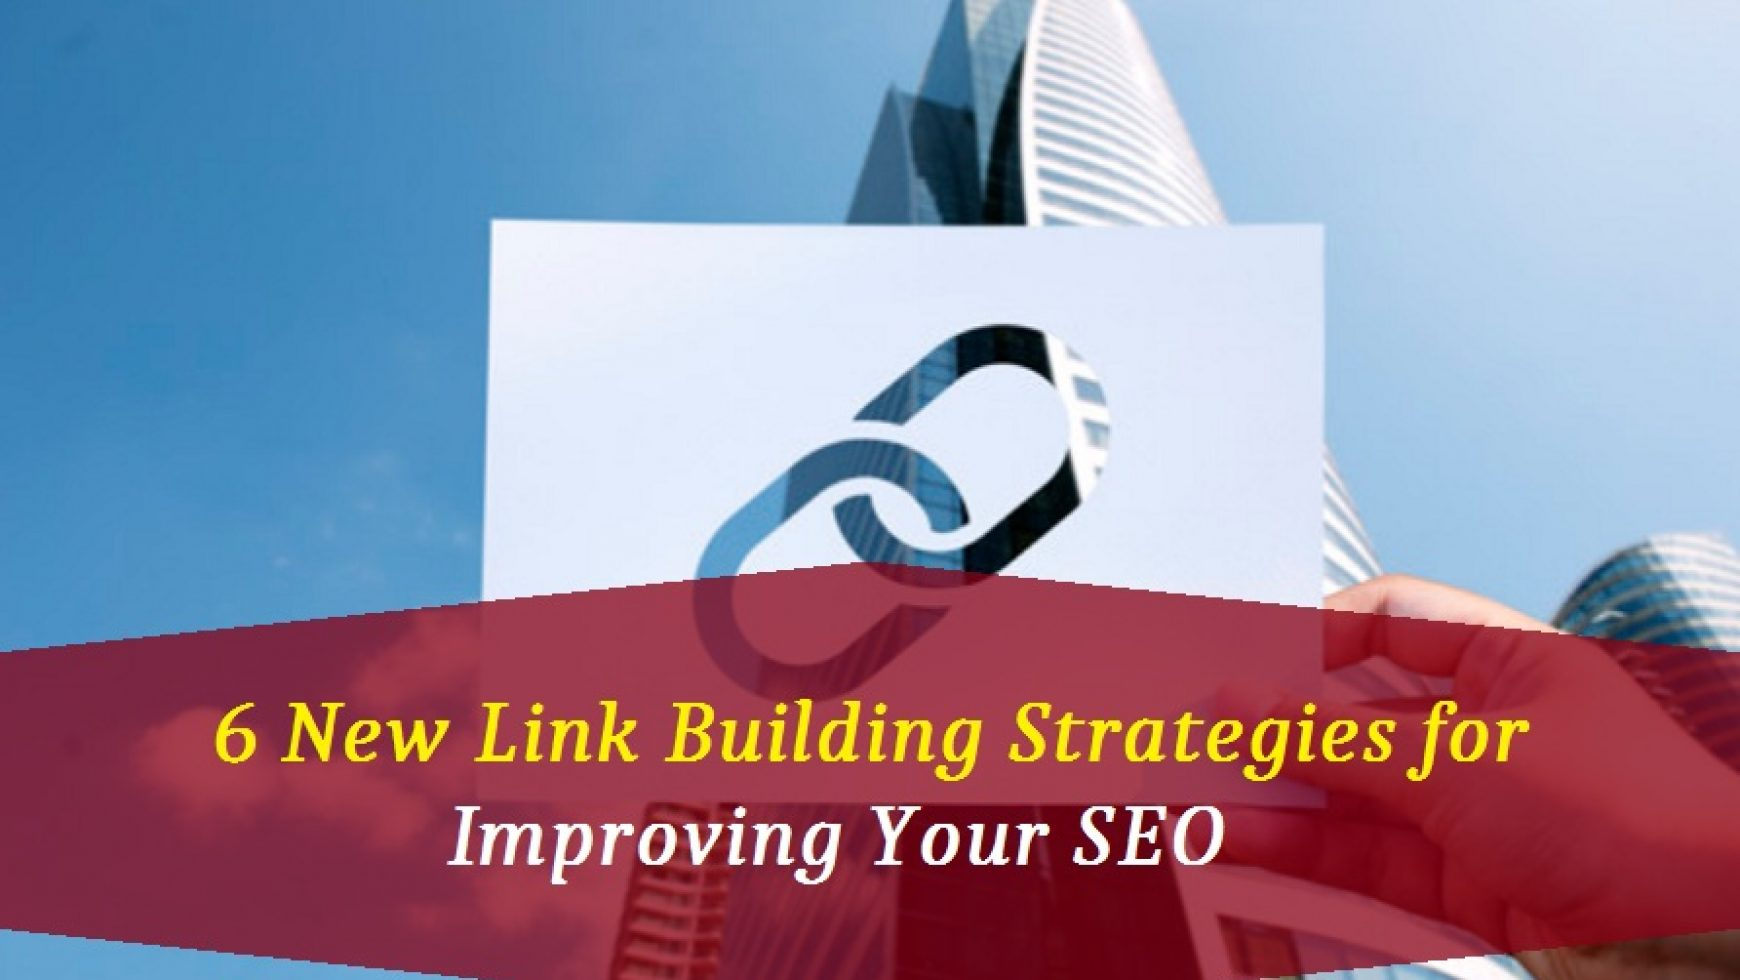 6 New Link Building Strategies for Improving Your SEO